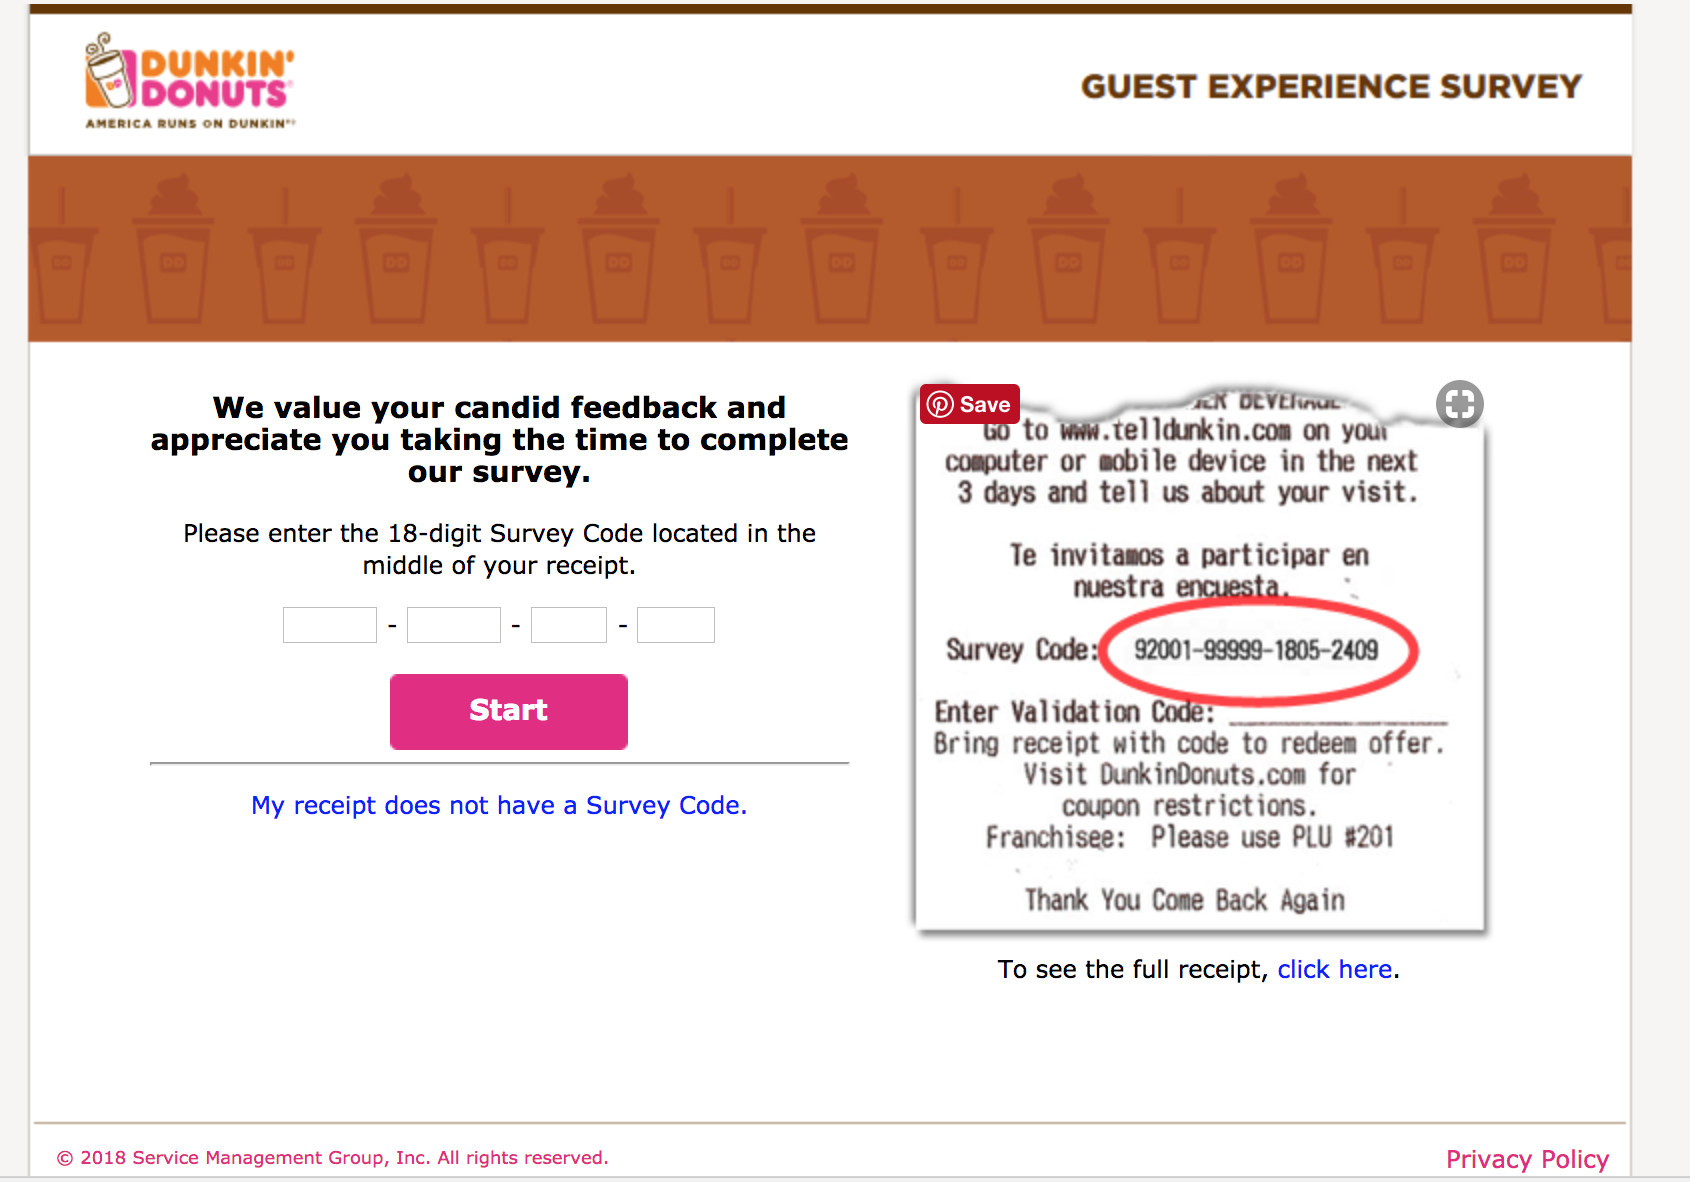 take telldunkin survey without a receipt code